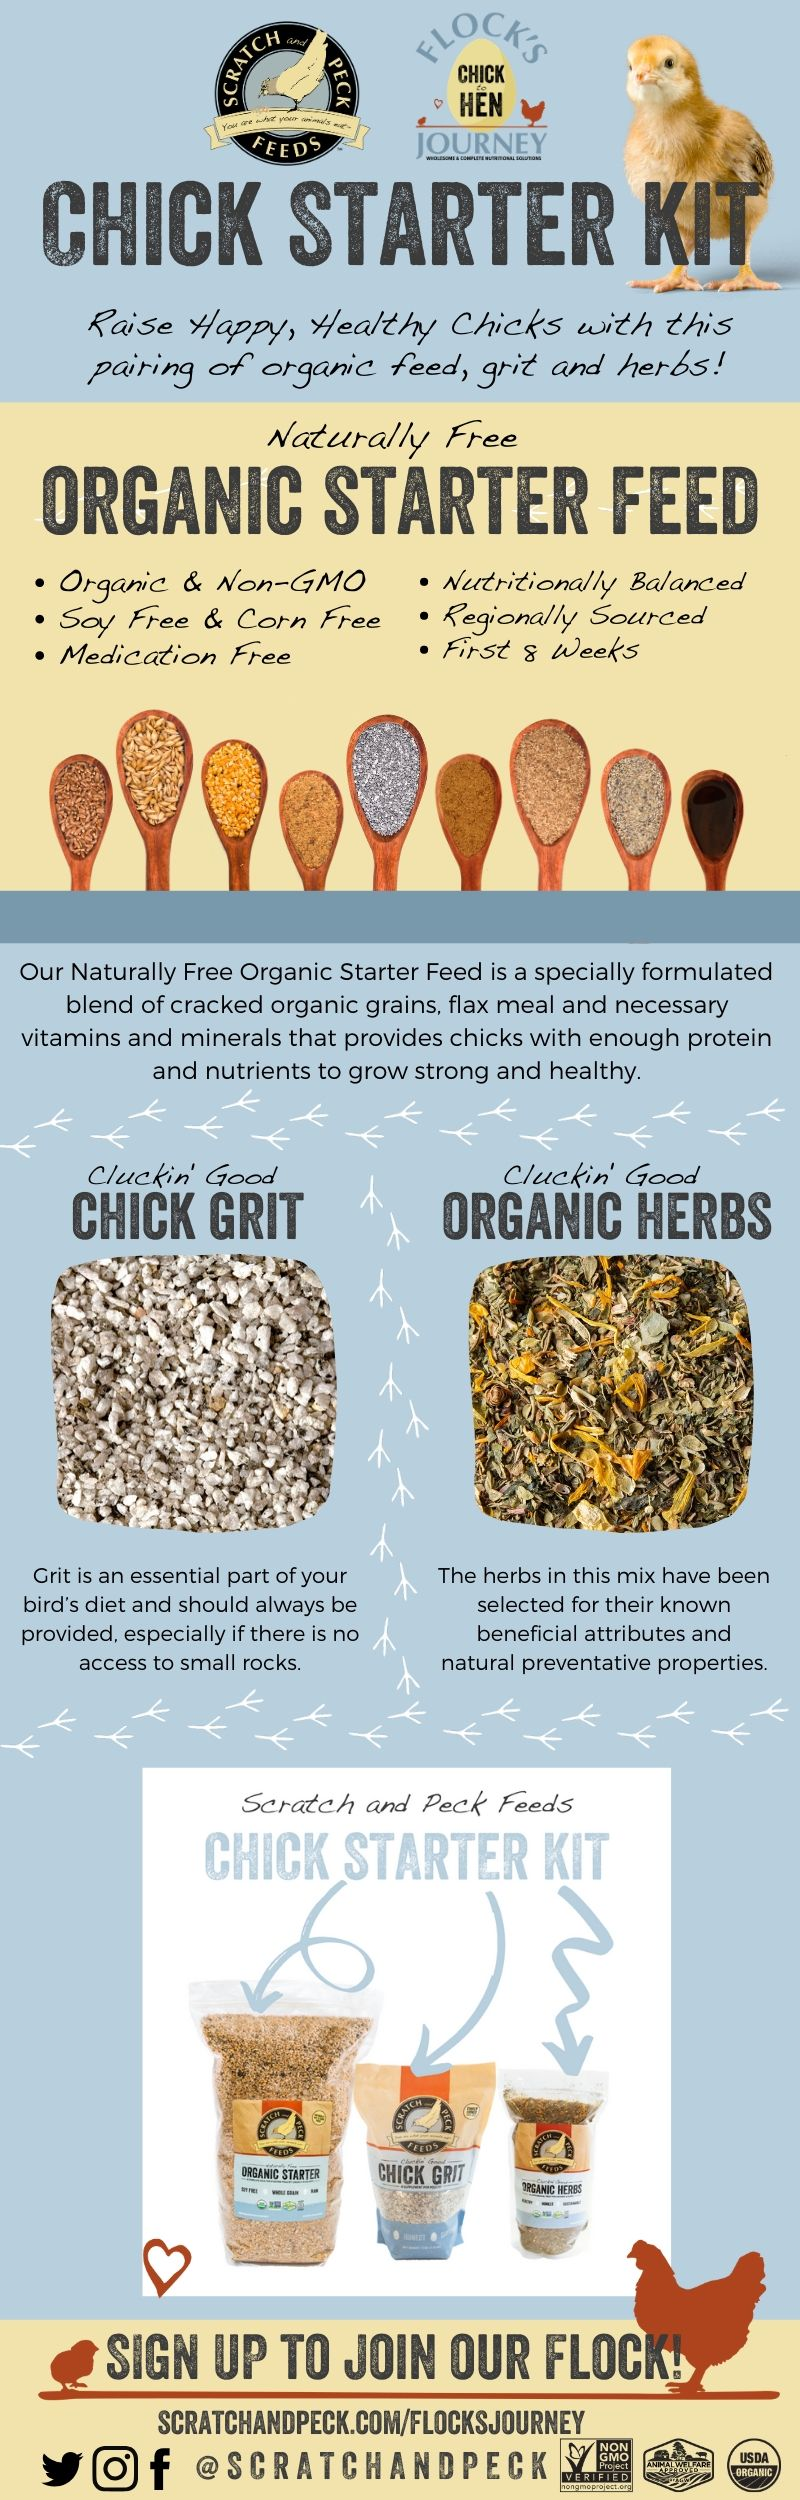 Scratch and Peck Feeds Chick Starter Kit Infographic